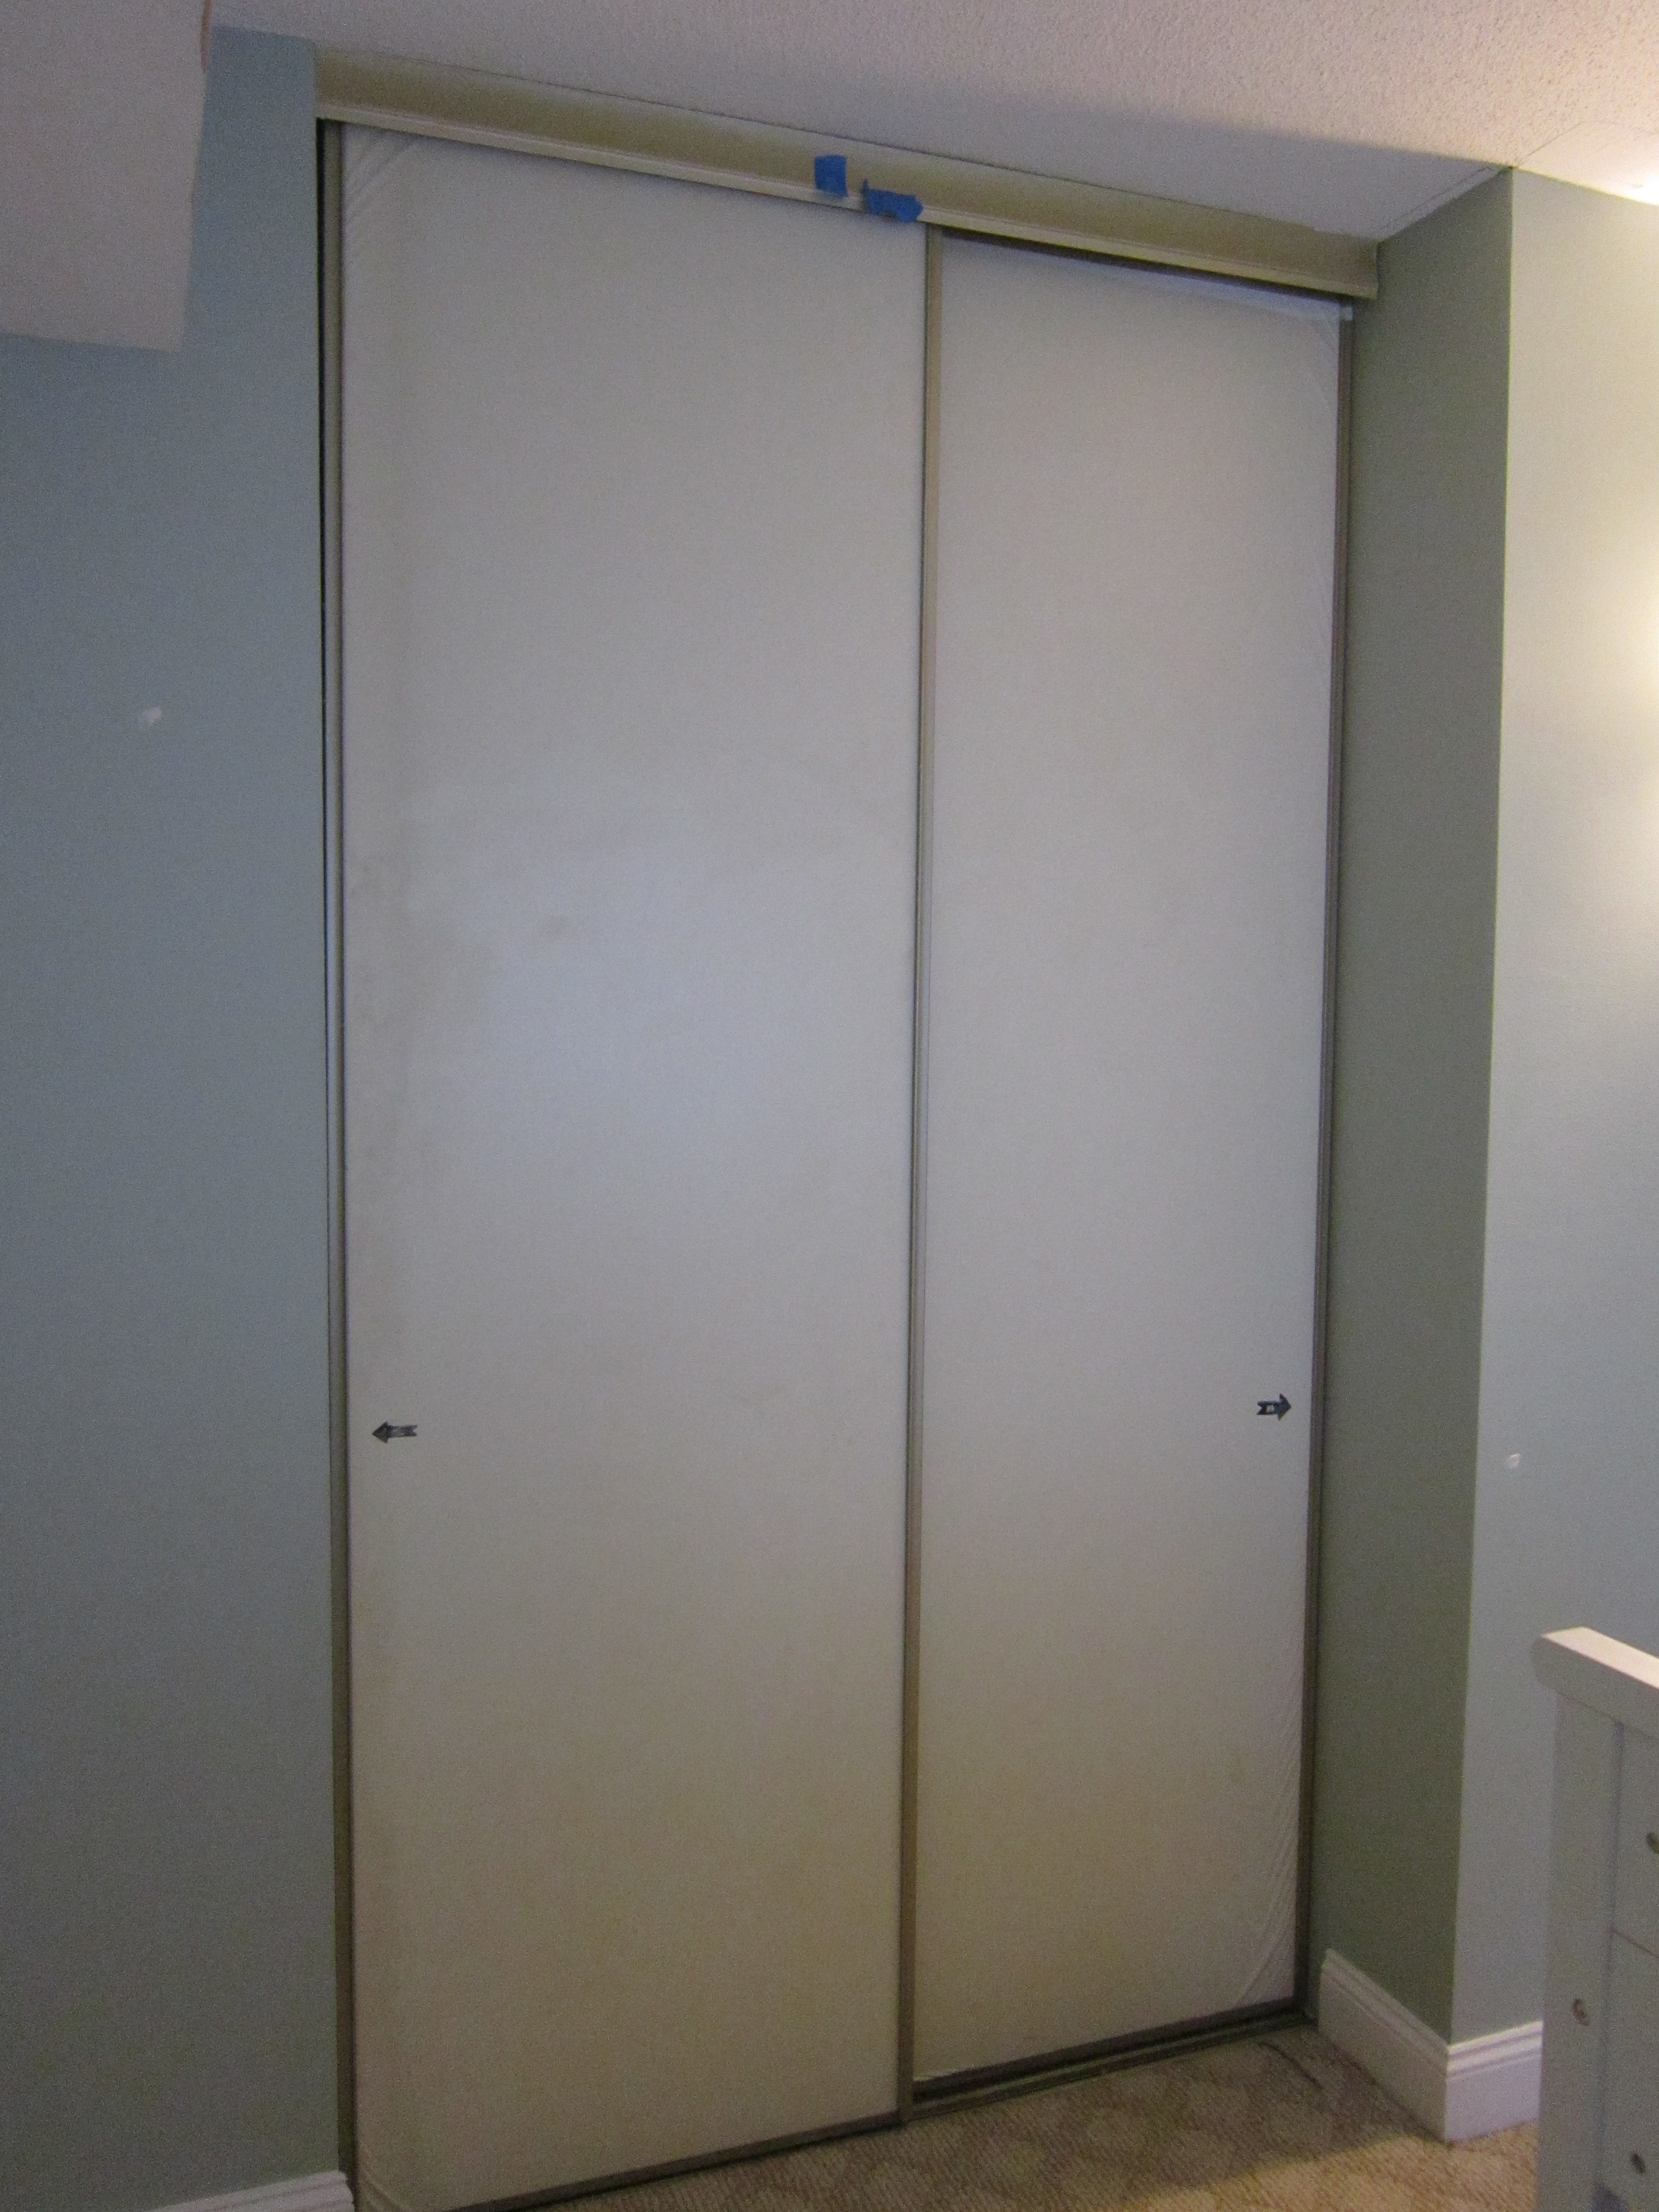 Updating Old Sliding Closet Doors3456 X 4608